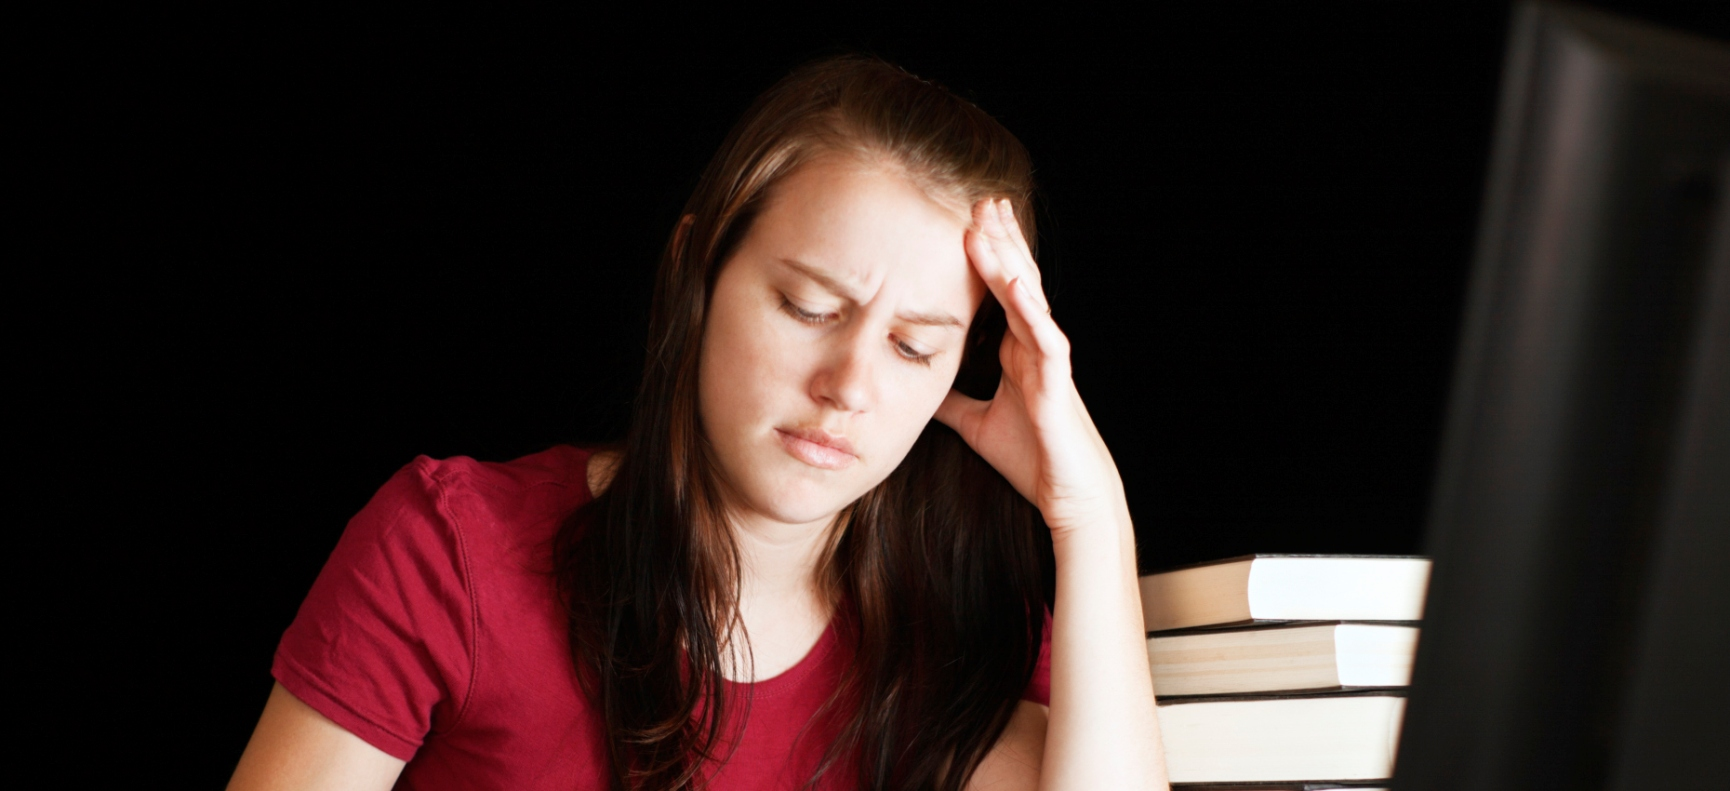 ... : Tuning in to homework: Does music help students concentrate